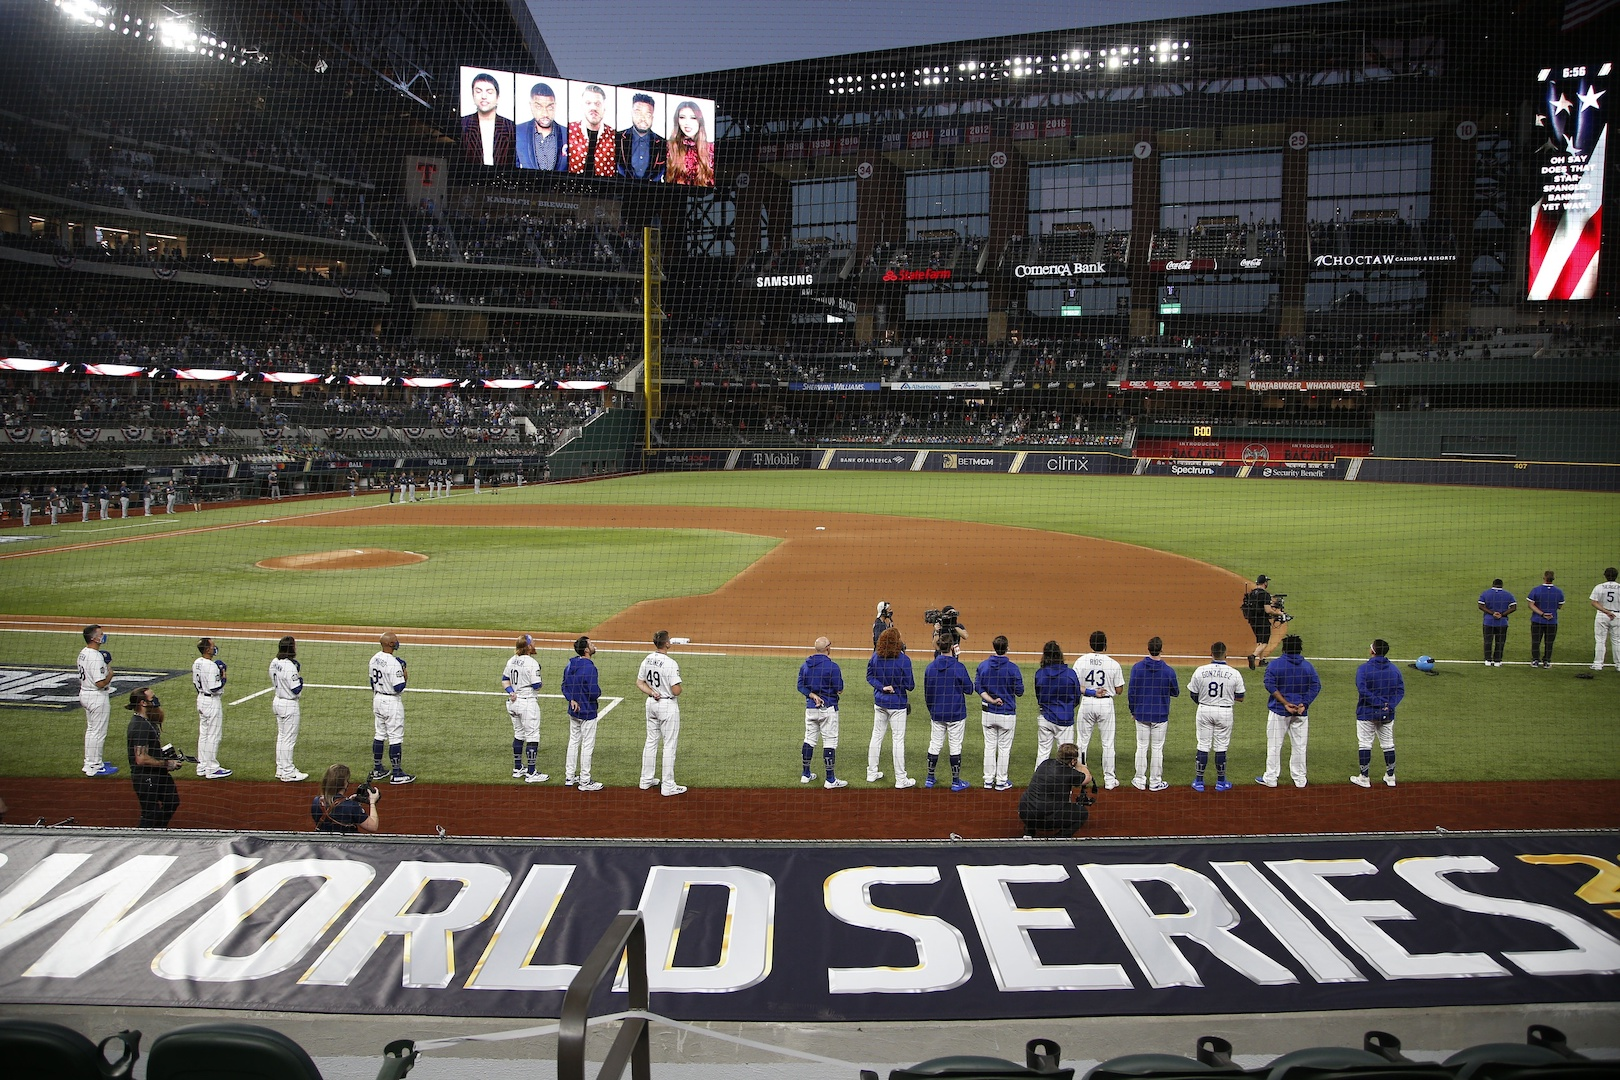 World Series at a neutral site? Let's make that one and done